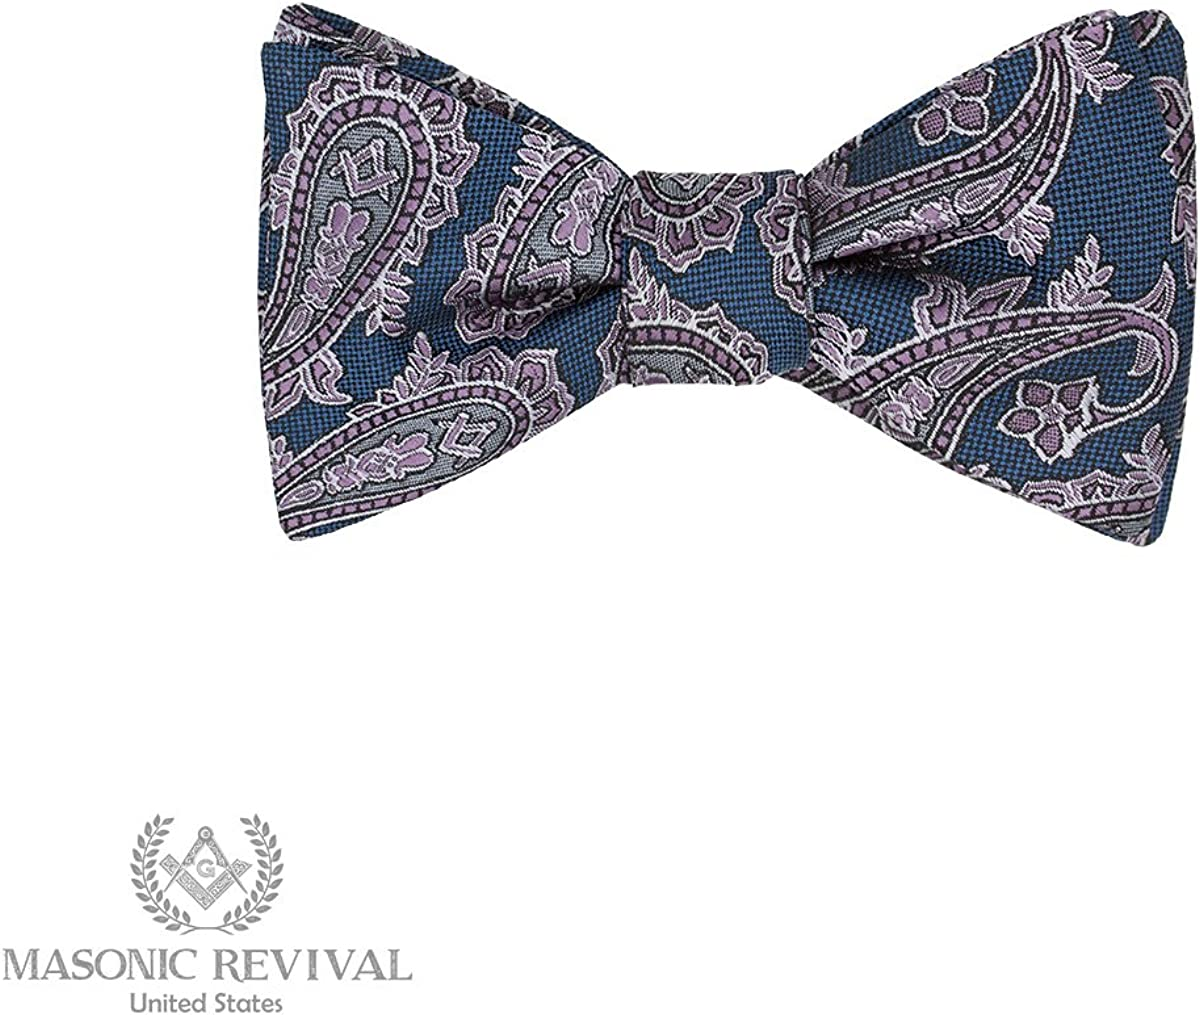 Azul Paisley Bow Tie by Masonic Revival (Standard Self-Tied)